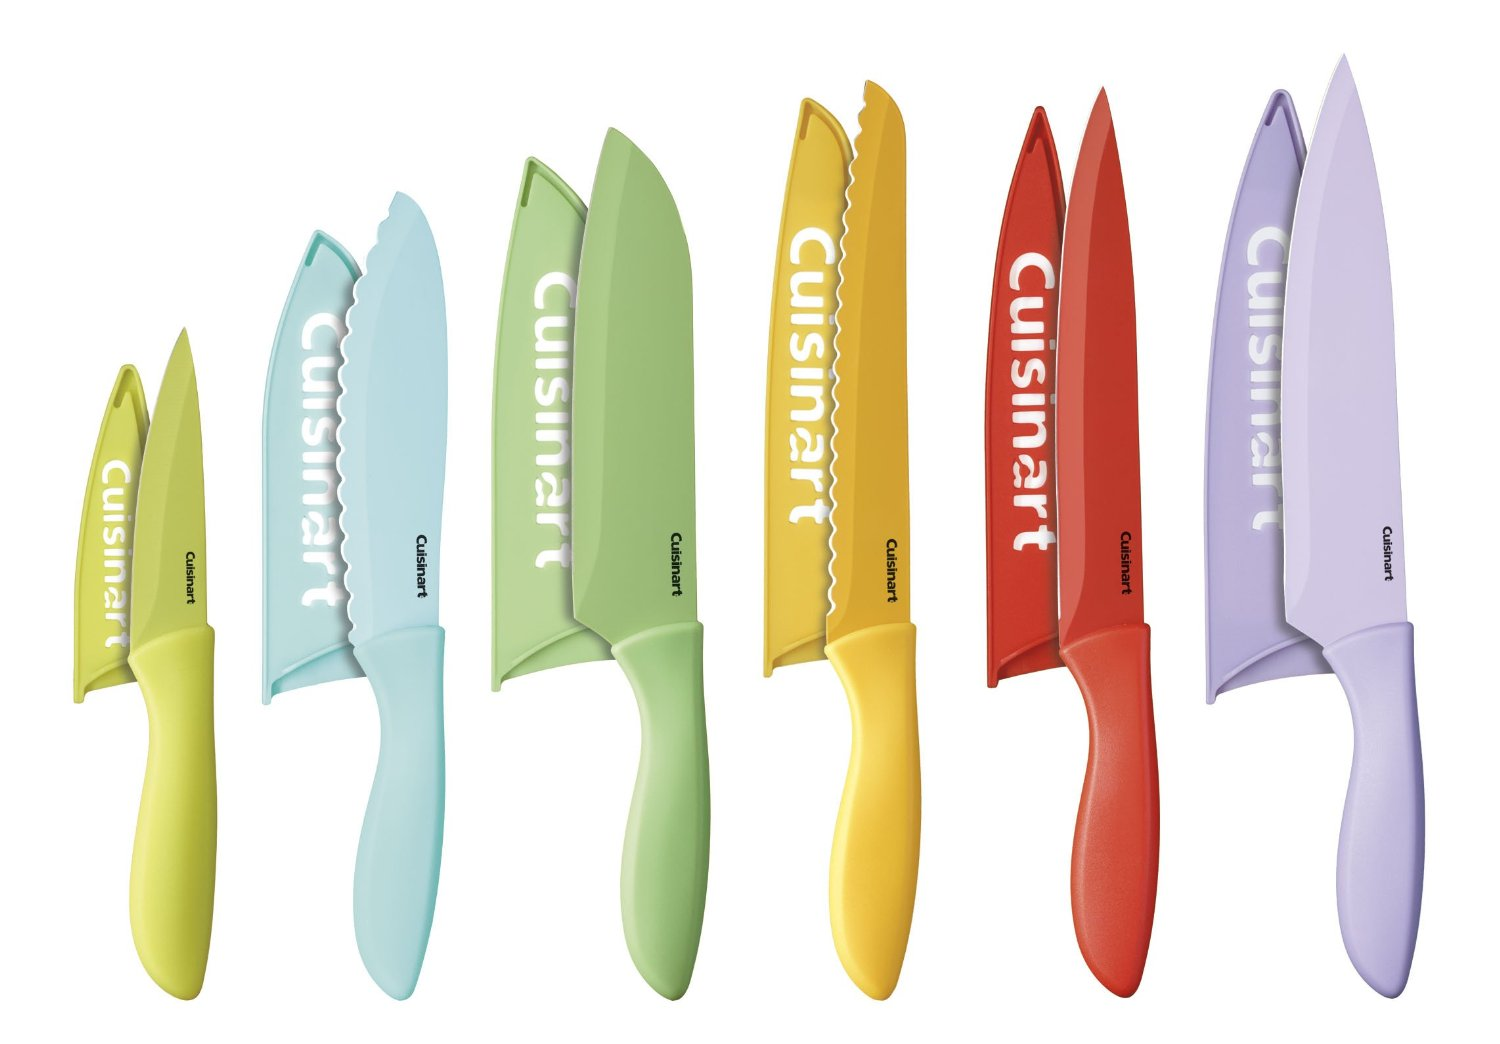 Today Only Cuisinart 12Piece Ceramic Coated Color Knife